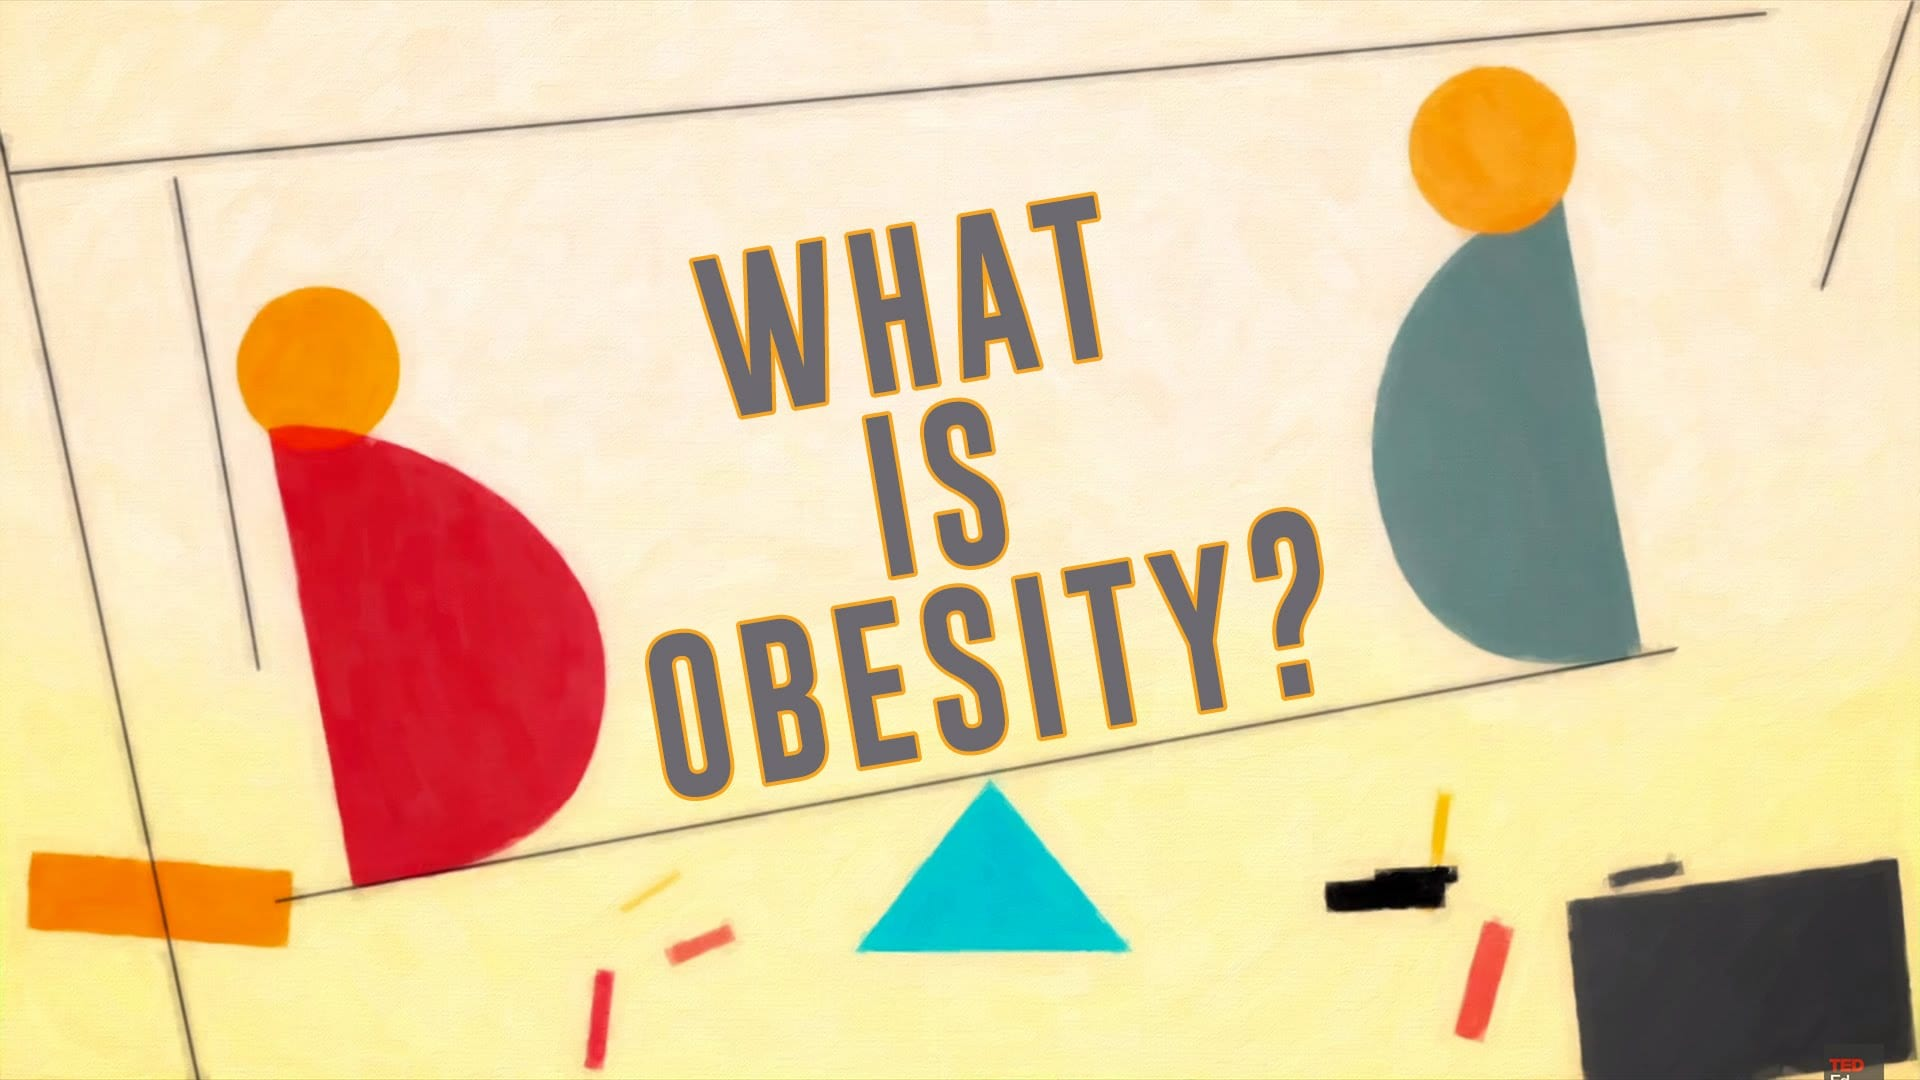 What Is Obesity? – Mia Nacamulli